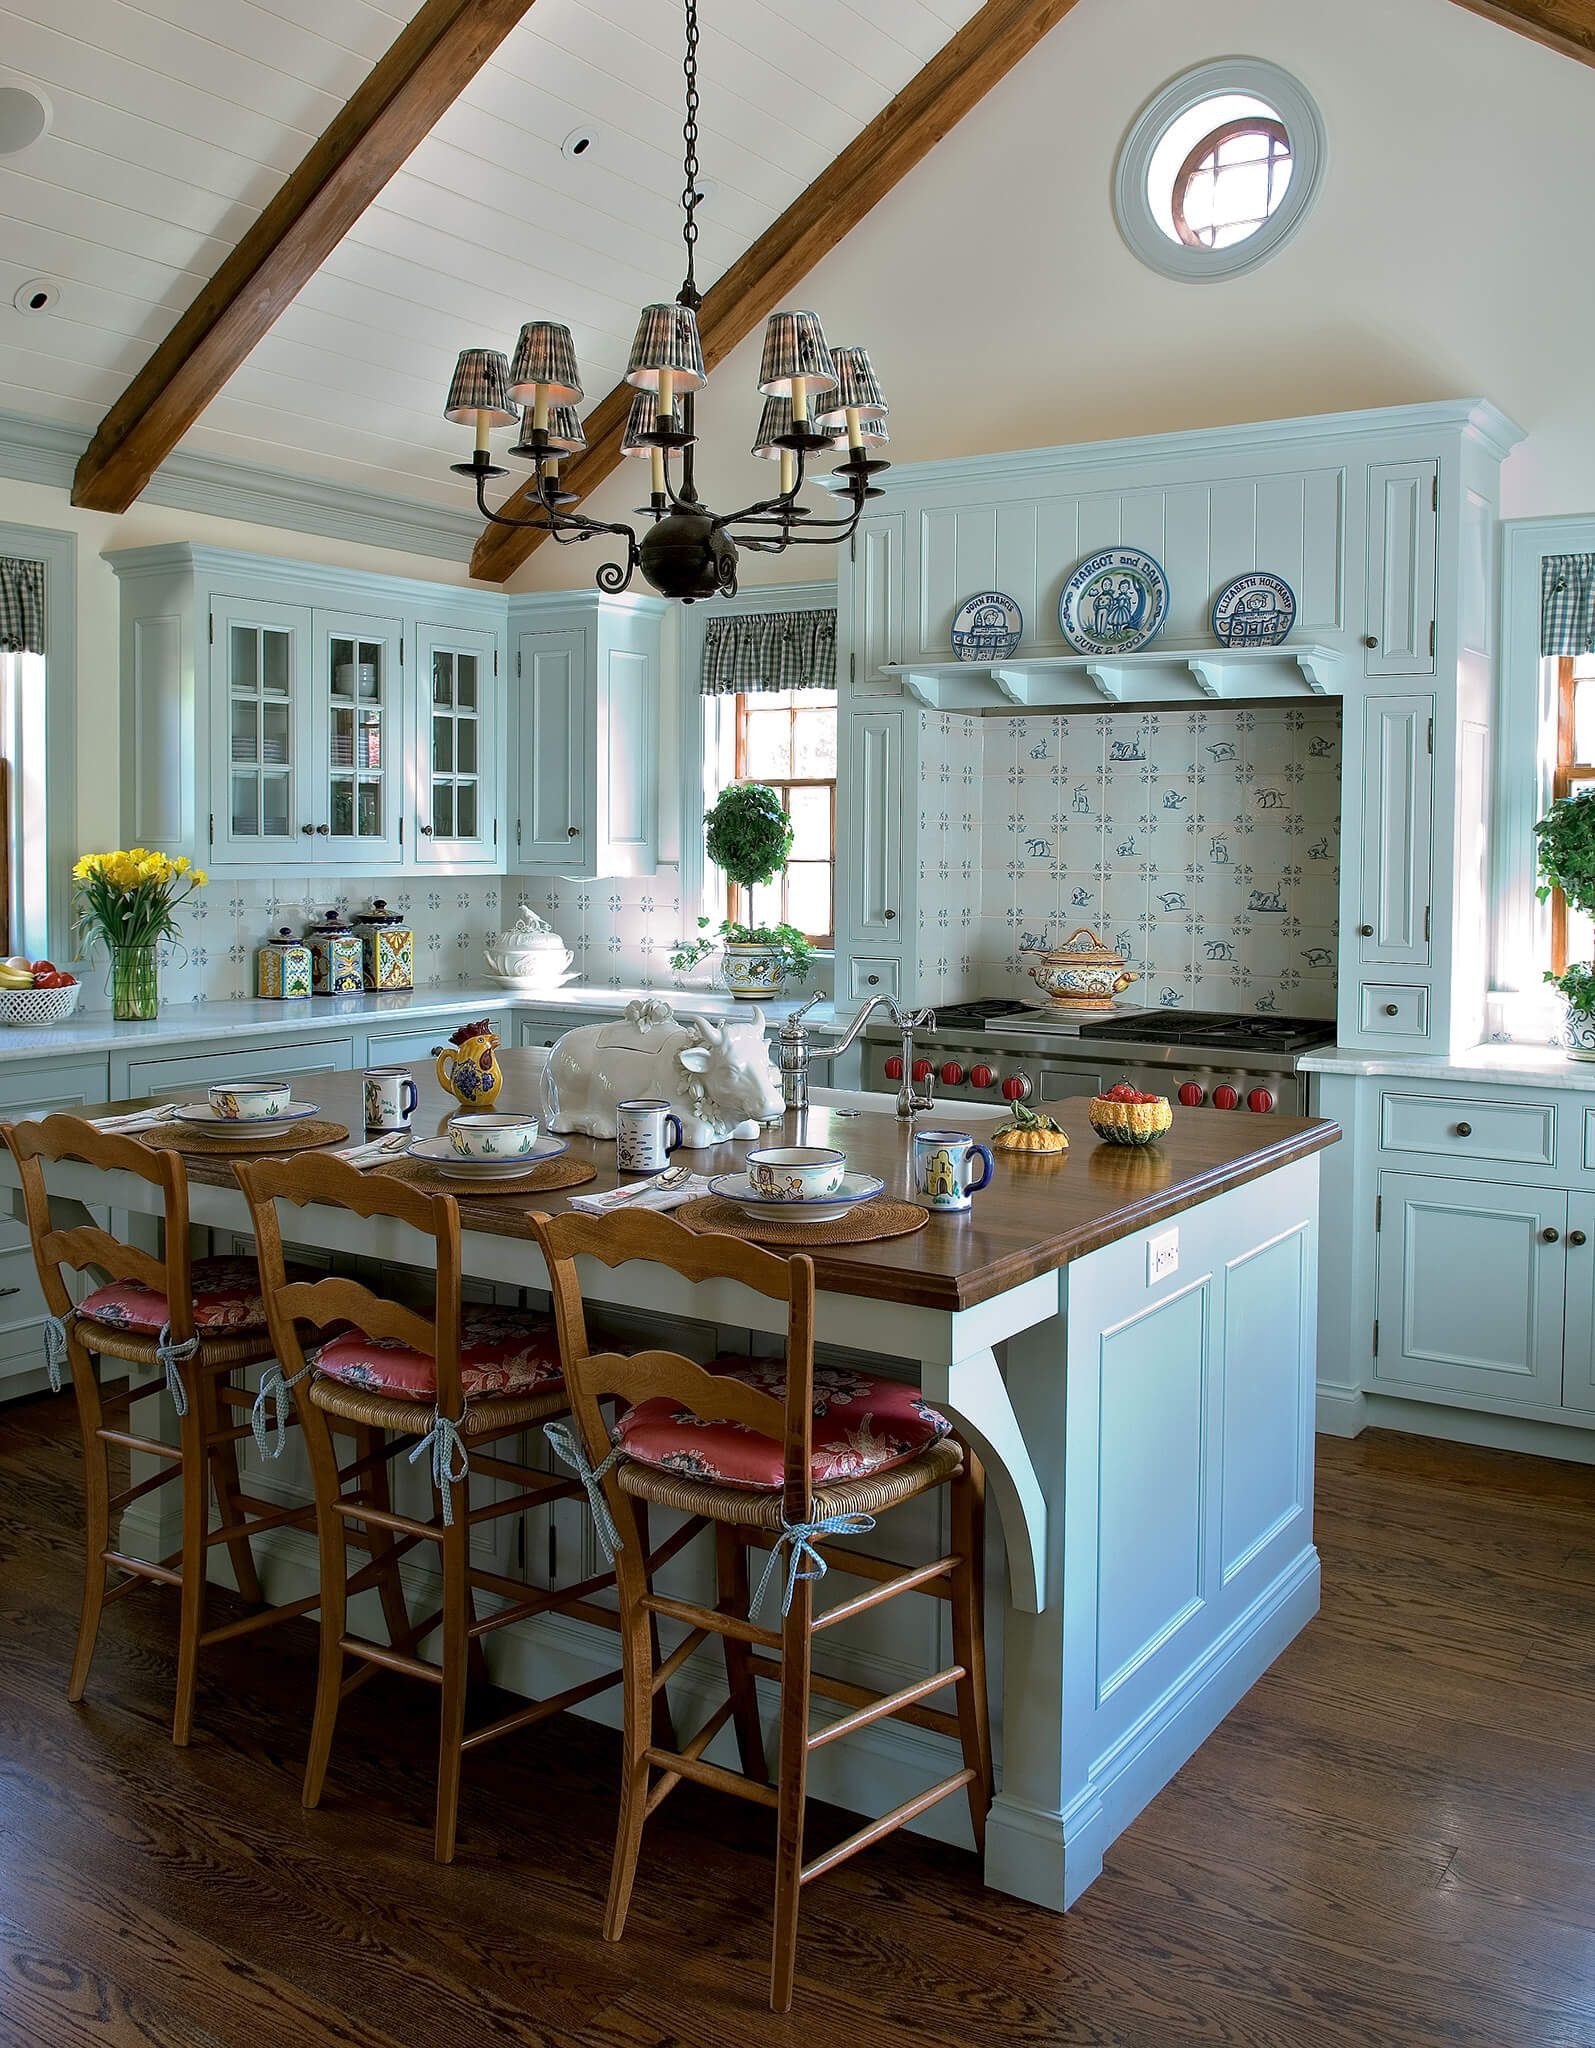 27 Cabinets for the Rustic Kitchen of Your Dreams   Kitchen Ideas ...